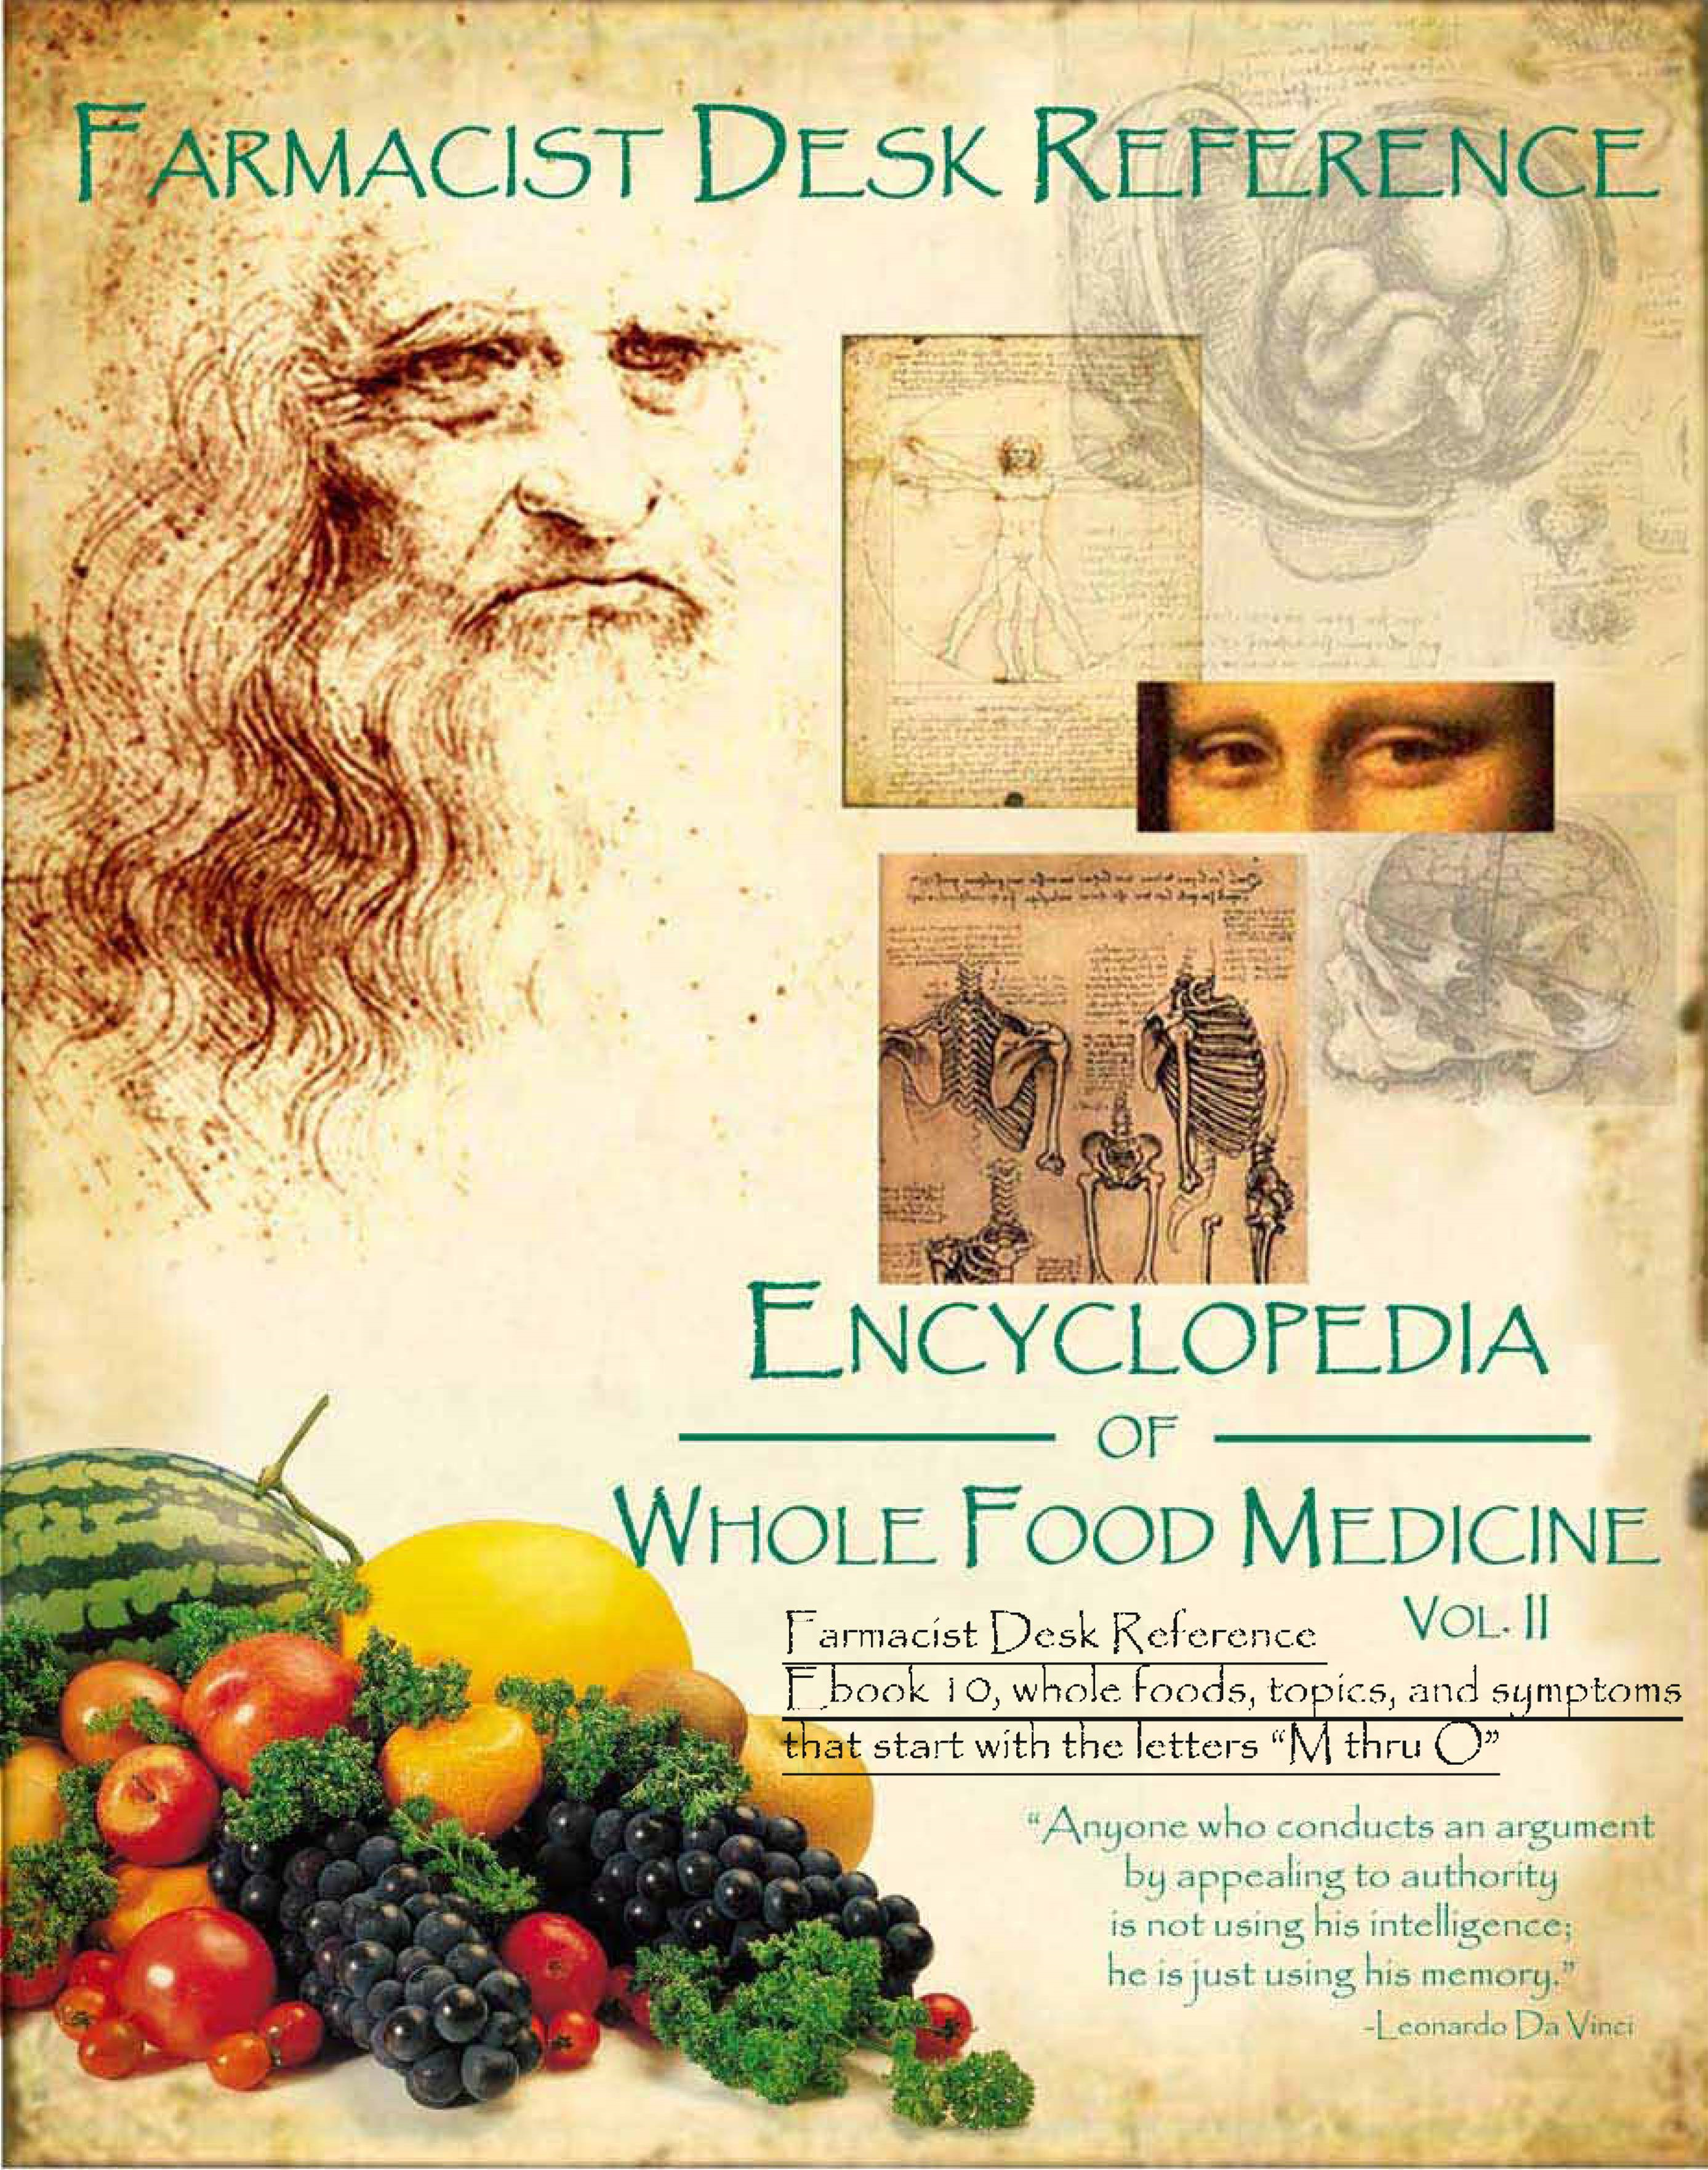 Farmacist Desk Reference Ebook 10, Whole Foods and topics that start with the letters M thru O: Farmacist Desk Reference E book series